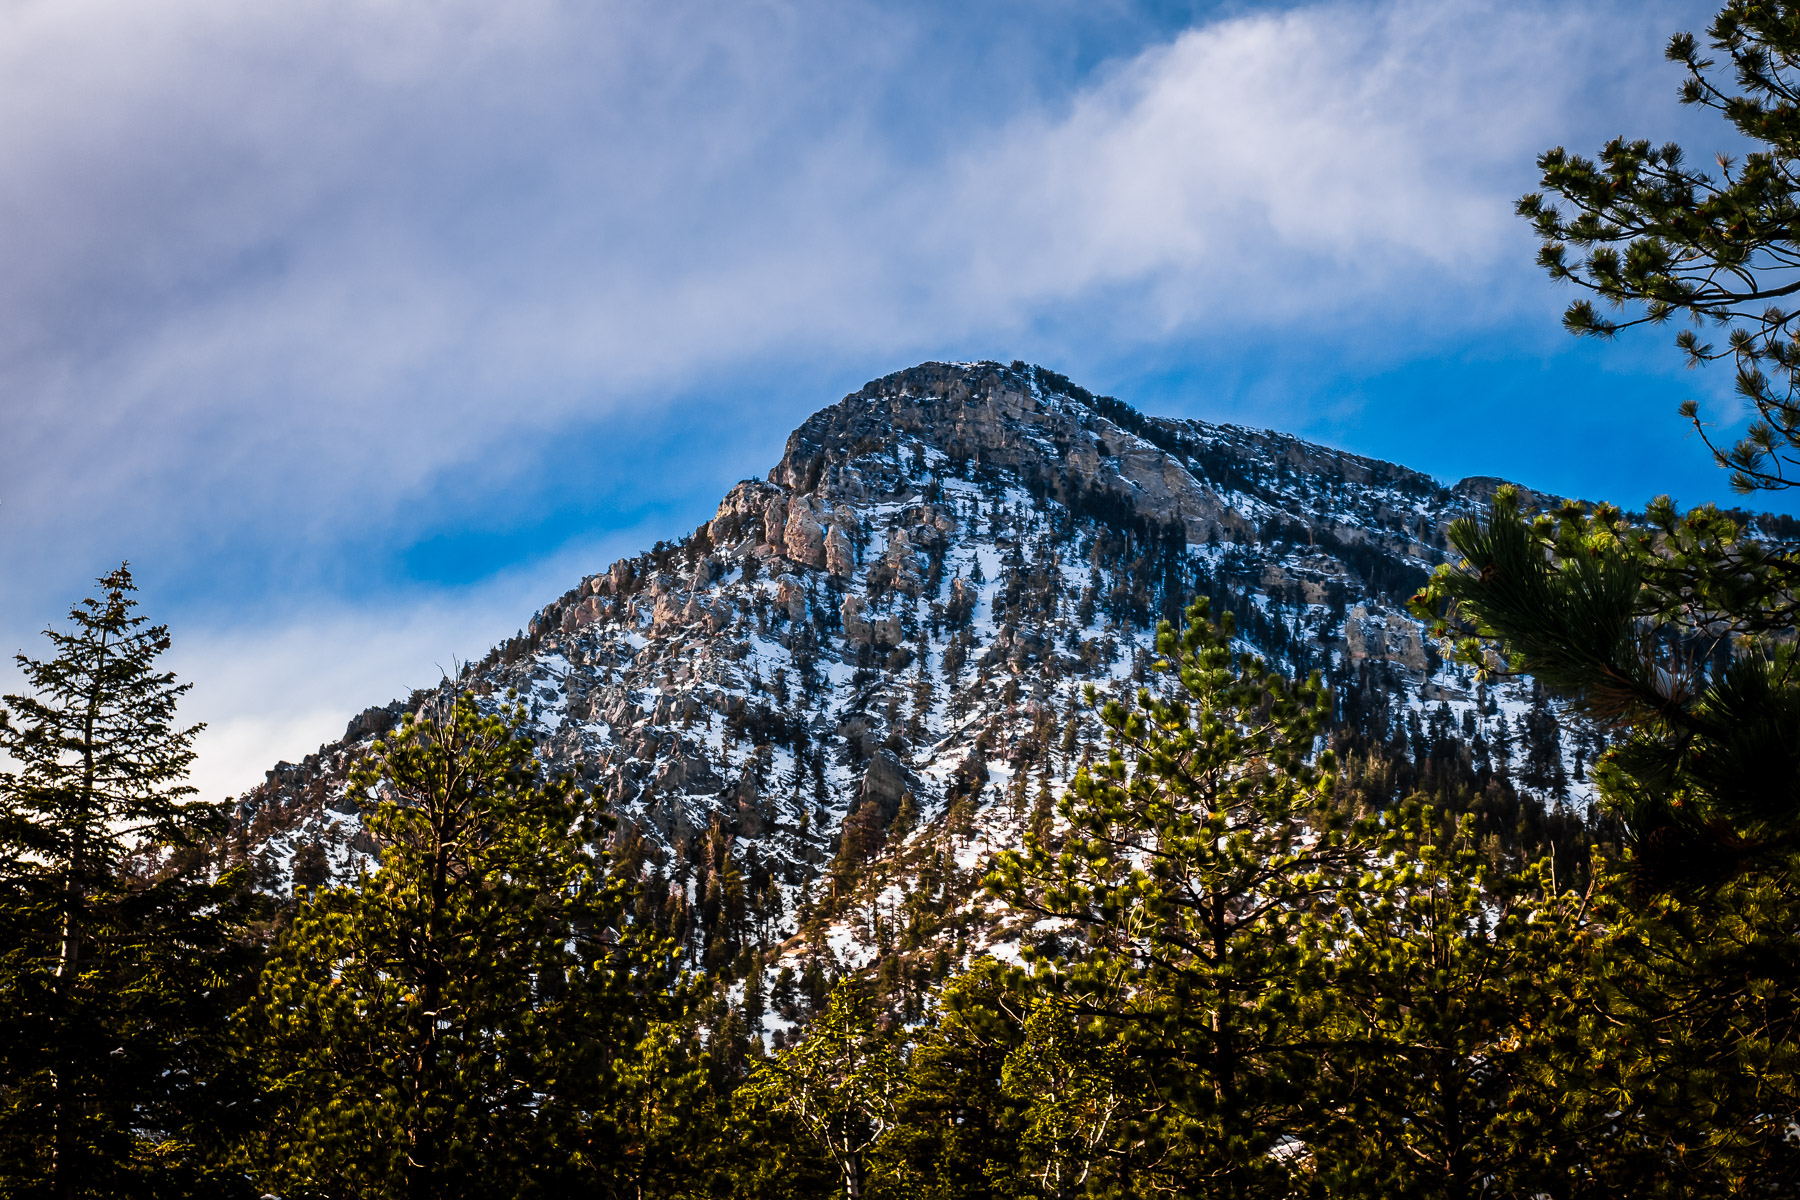 Nevada's Mount Charleston looms over the surrounding forest.